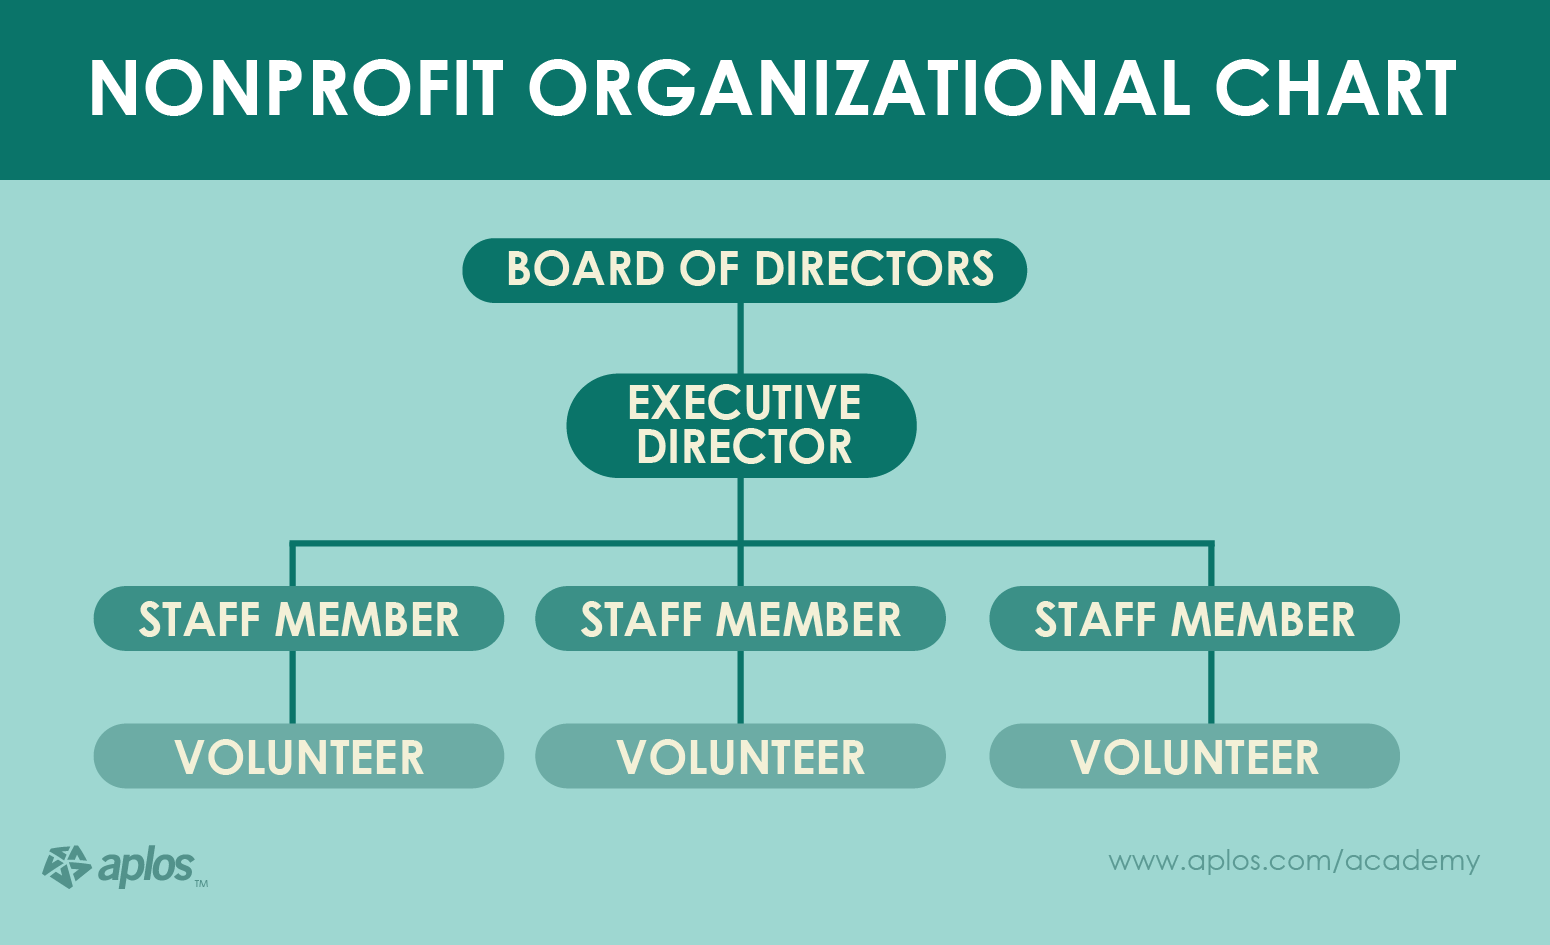 management control system in non profit organisations The number of non-profit organizations has grown considerably over the last decades, however management control techniques are not being introduced with the same frequency as in lucrative organizations.